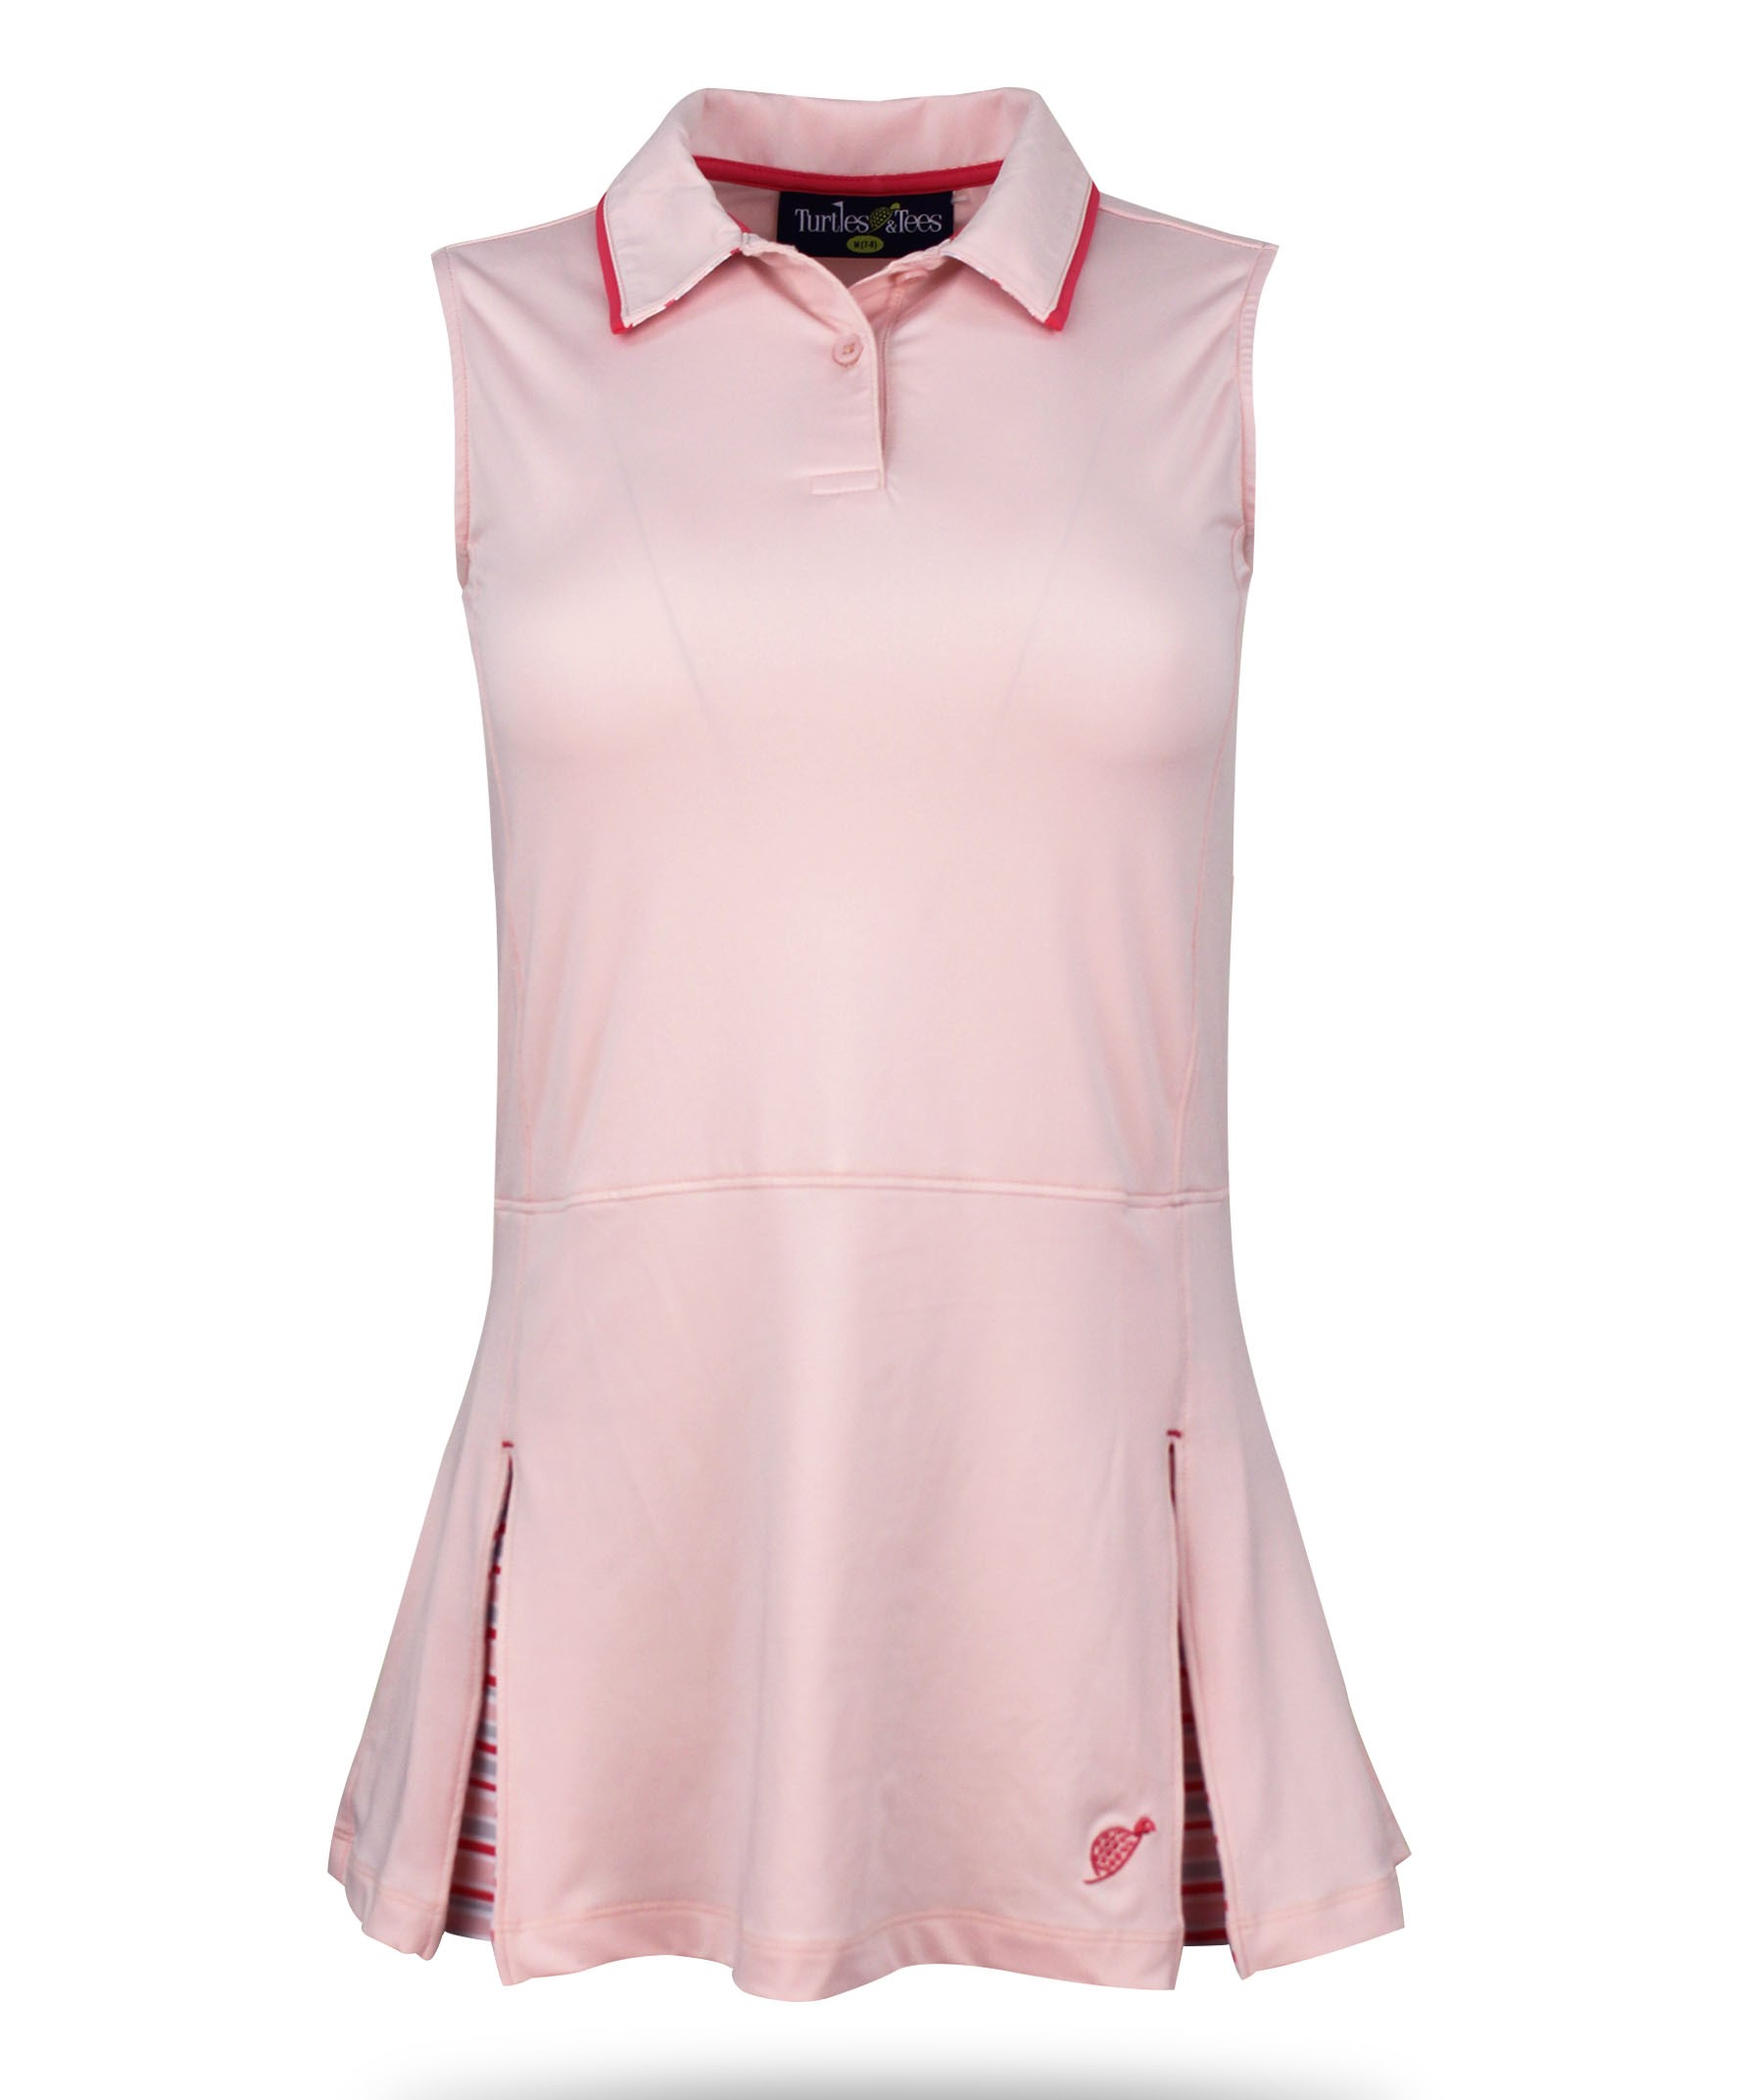 Kate Girl's Golf and Tennis Dress in Pale Pink Print w/Coordinating spandex shorts